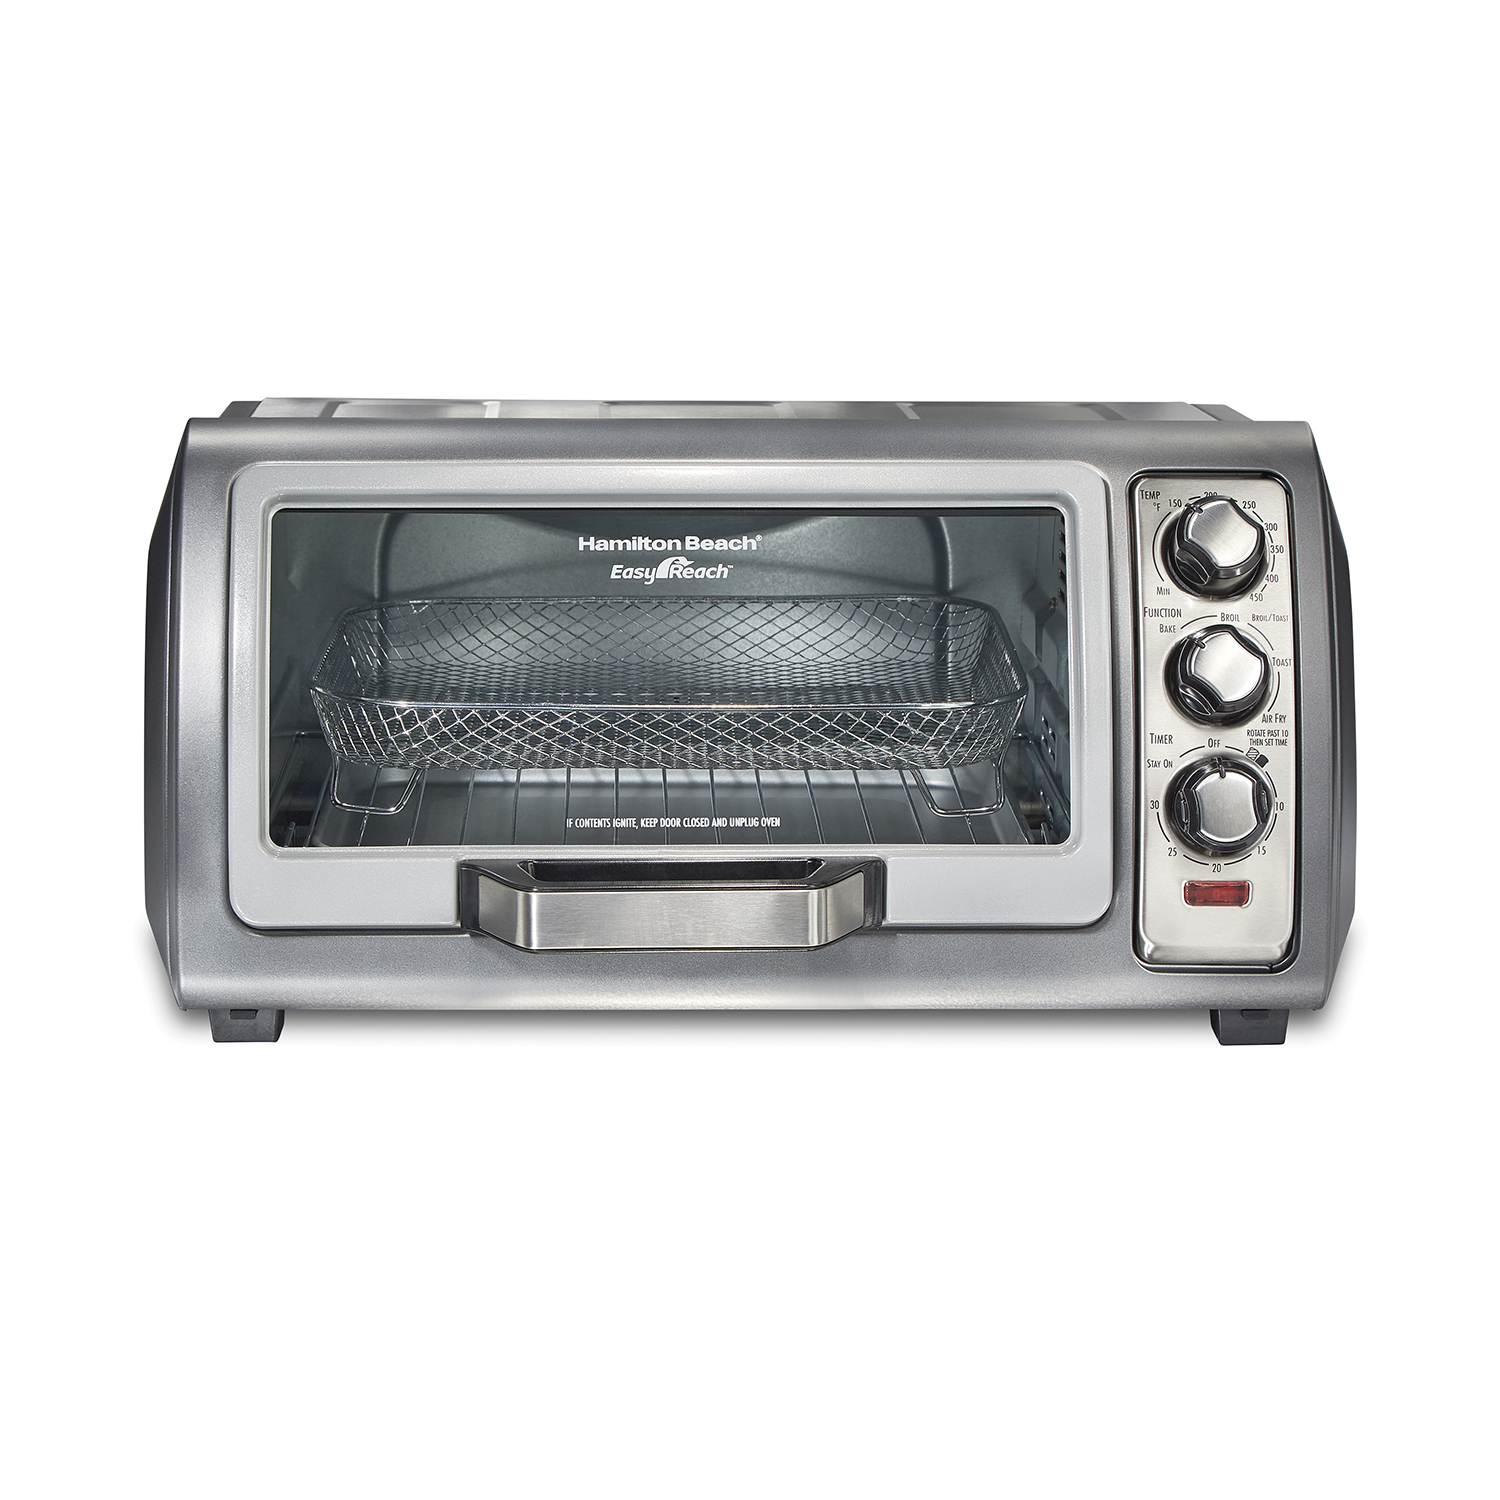 Easy Reach® Sure-Crisp® Air Fryer Toaster Oven  (31523C)